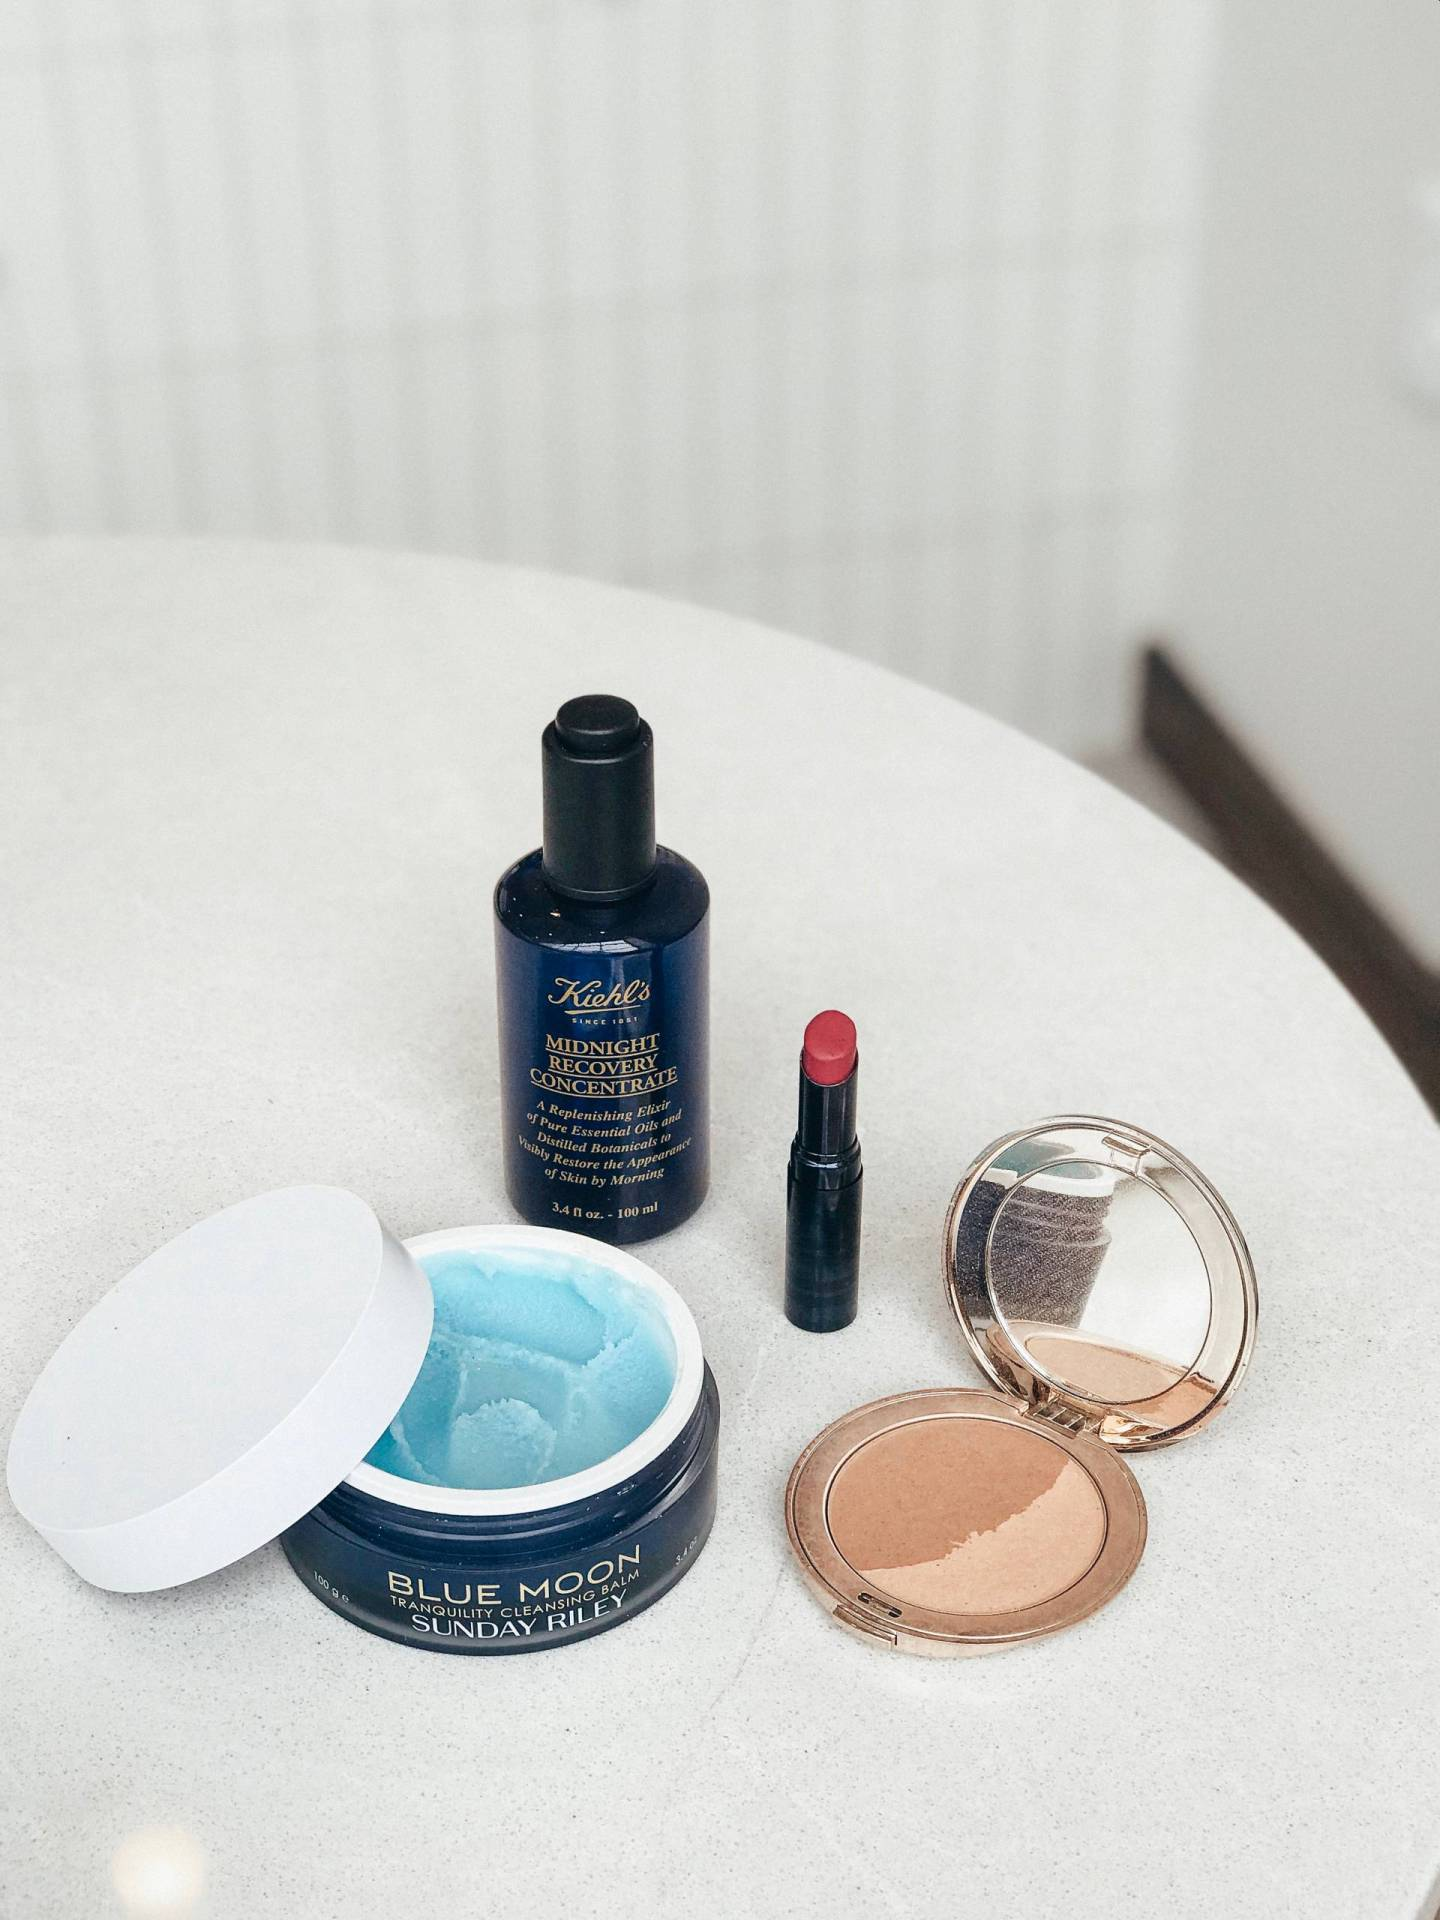 Clean Beauty Reviews vol I | Kiehl's Midnight Recovery Concentrate, Sunday Riley Blue Moon Tranquility Cleansing Balm, BeautyCounter Color Intense Lipstick & Jane Iredale Bronzing Powder